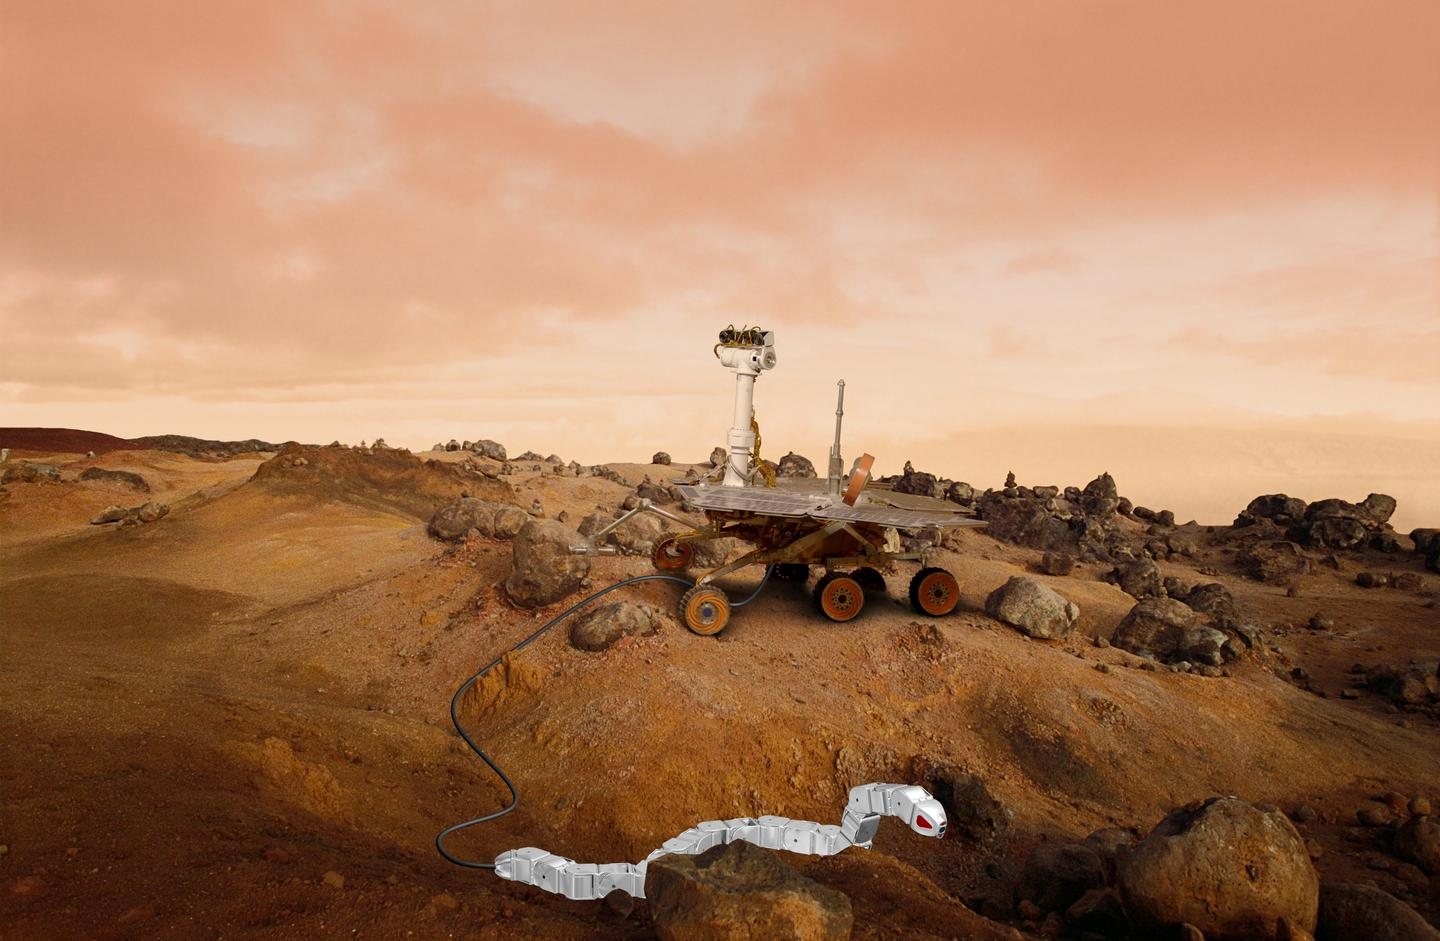 Artist's impression of a robot snake and a rover on Mars (Image: James Steidl/Shutterstock.com)